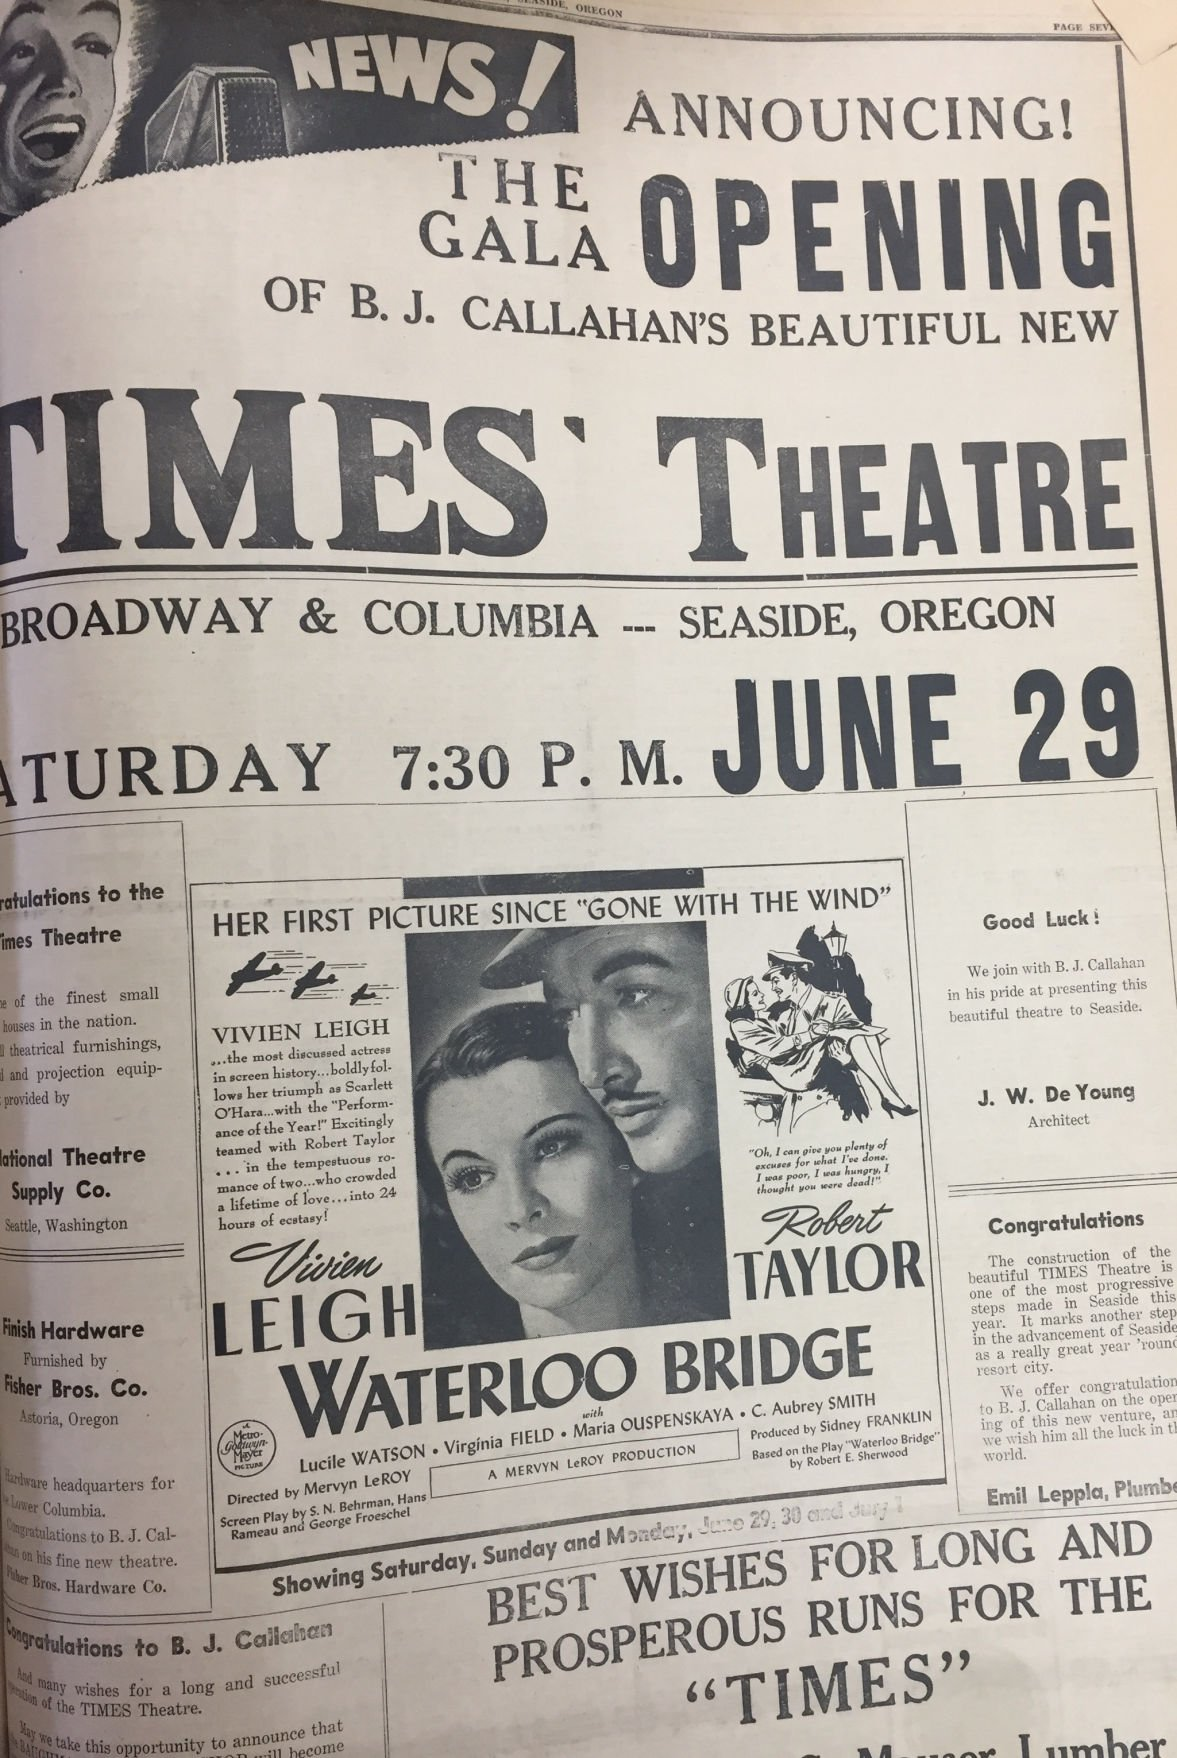 The Times Theatre returns to Seaside